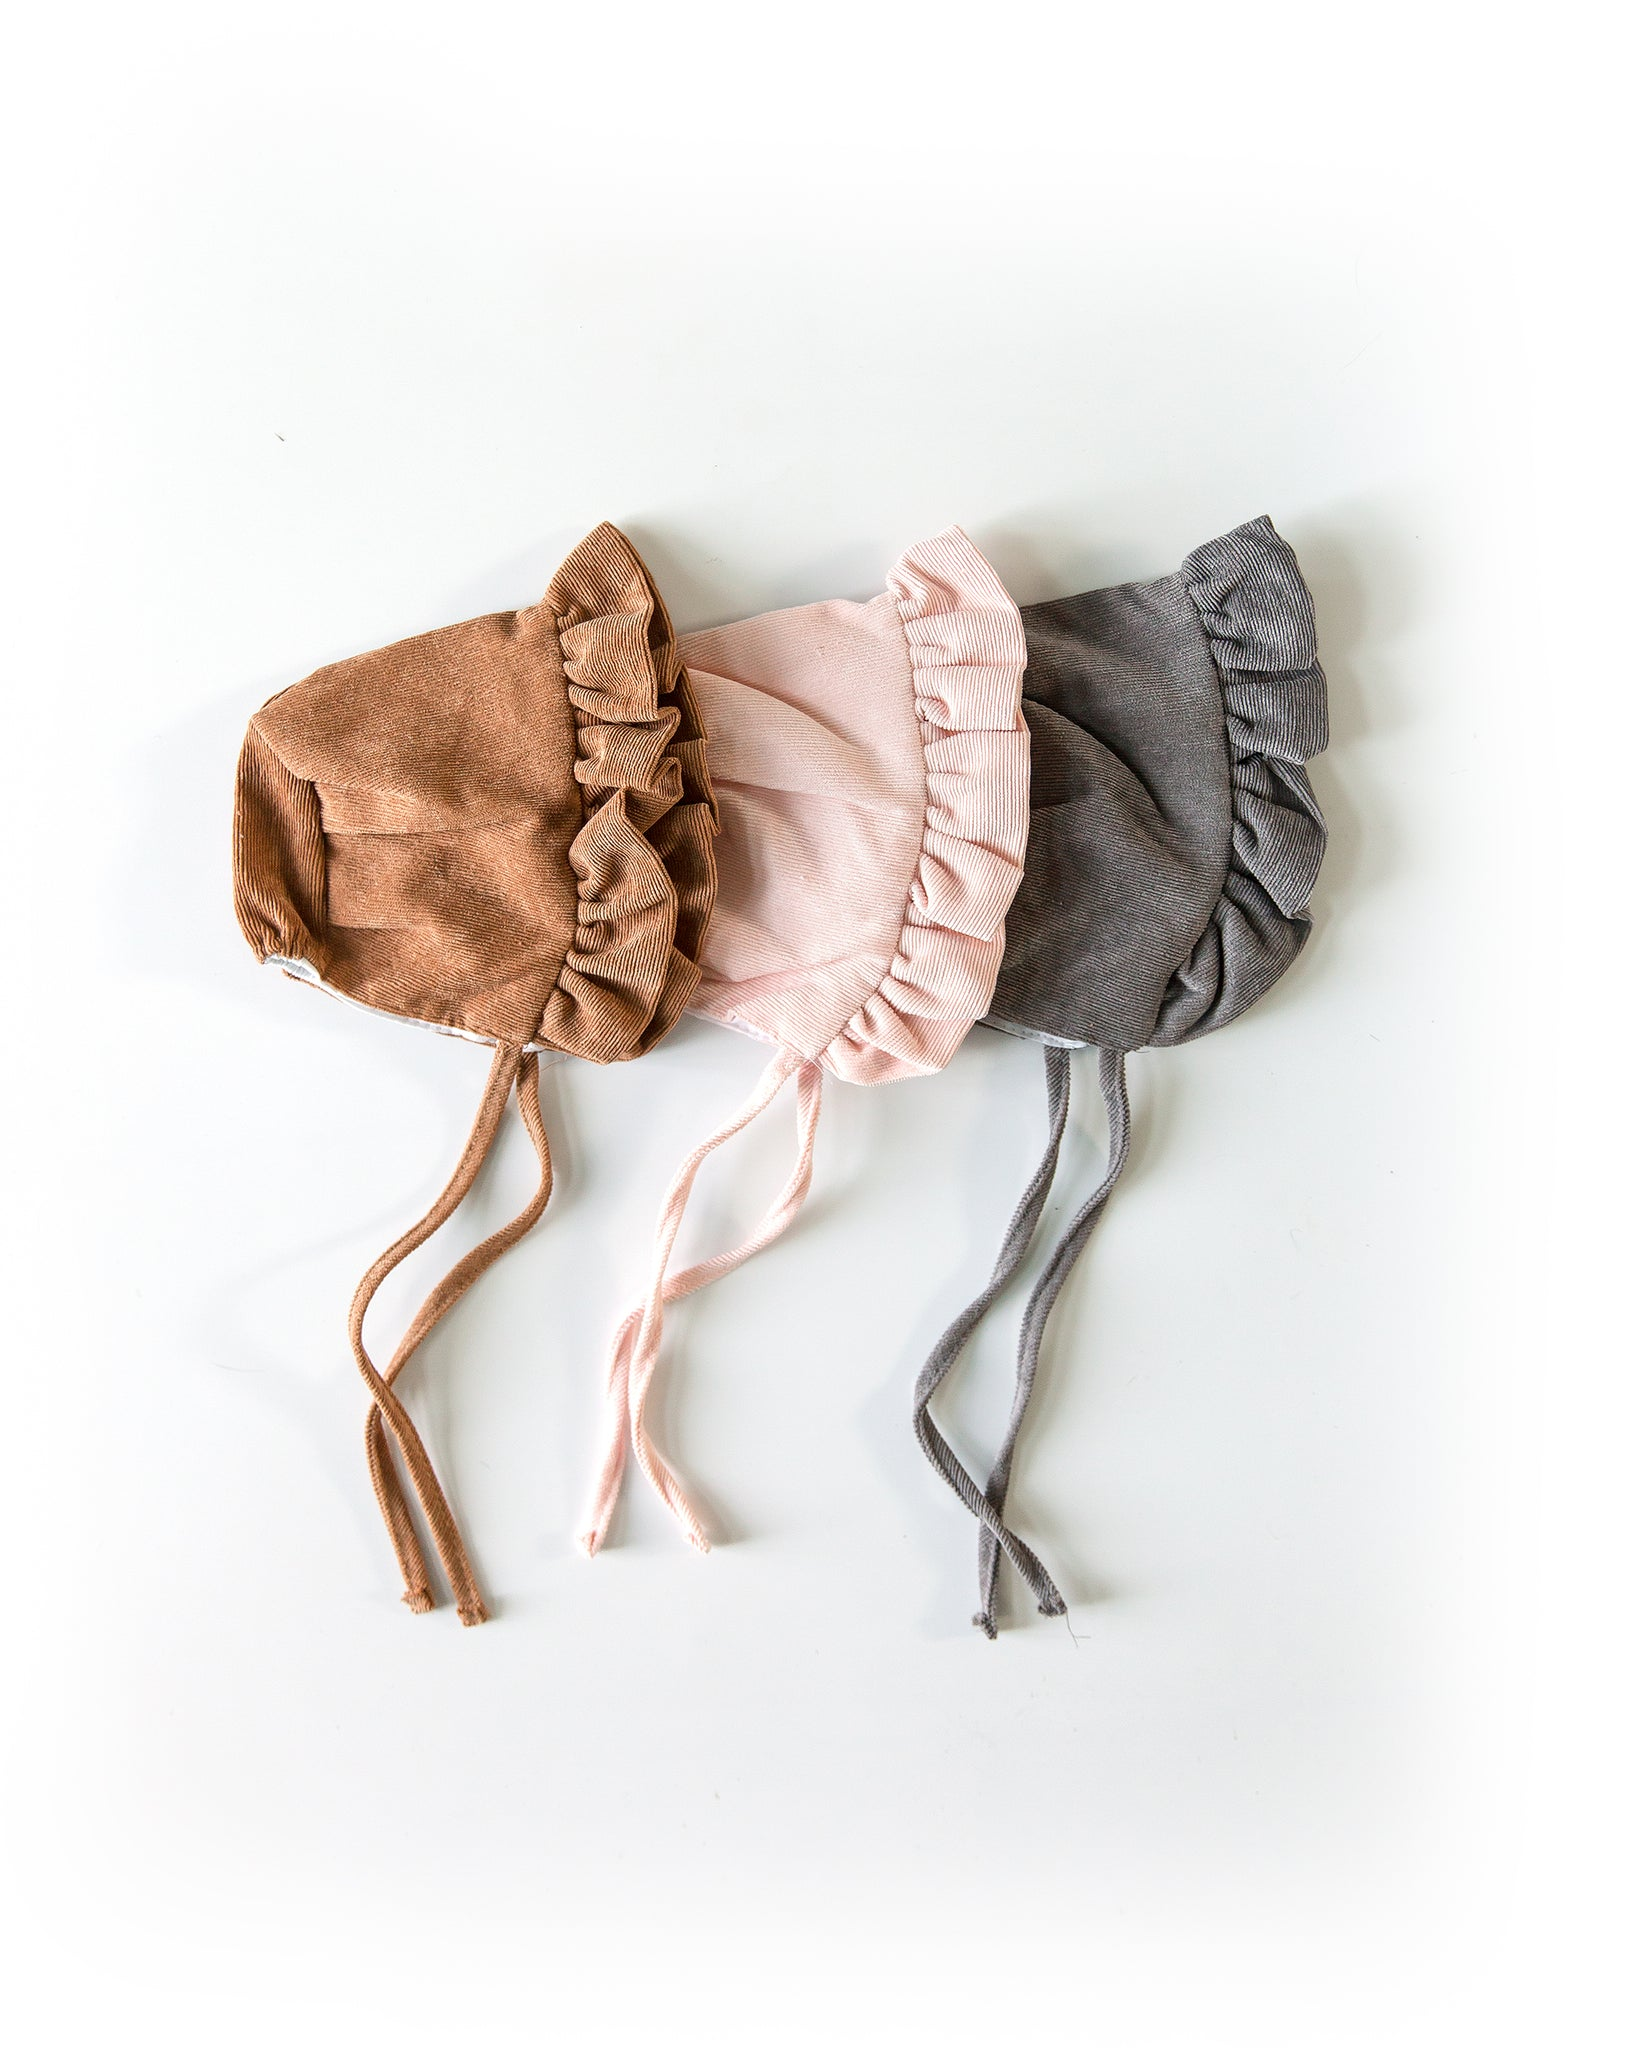 Ruffle Bonnet in Baby Pink - Reverie Threads